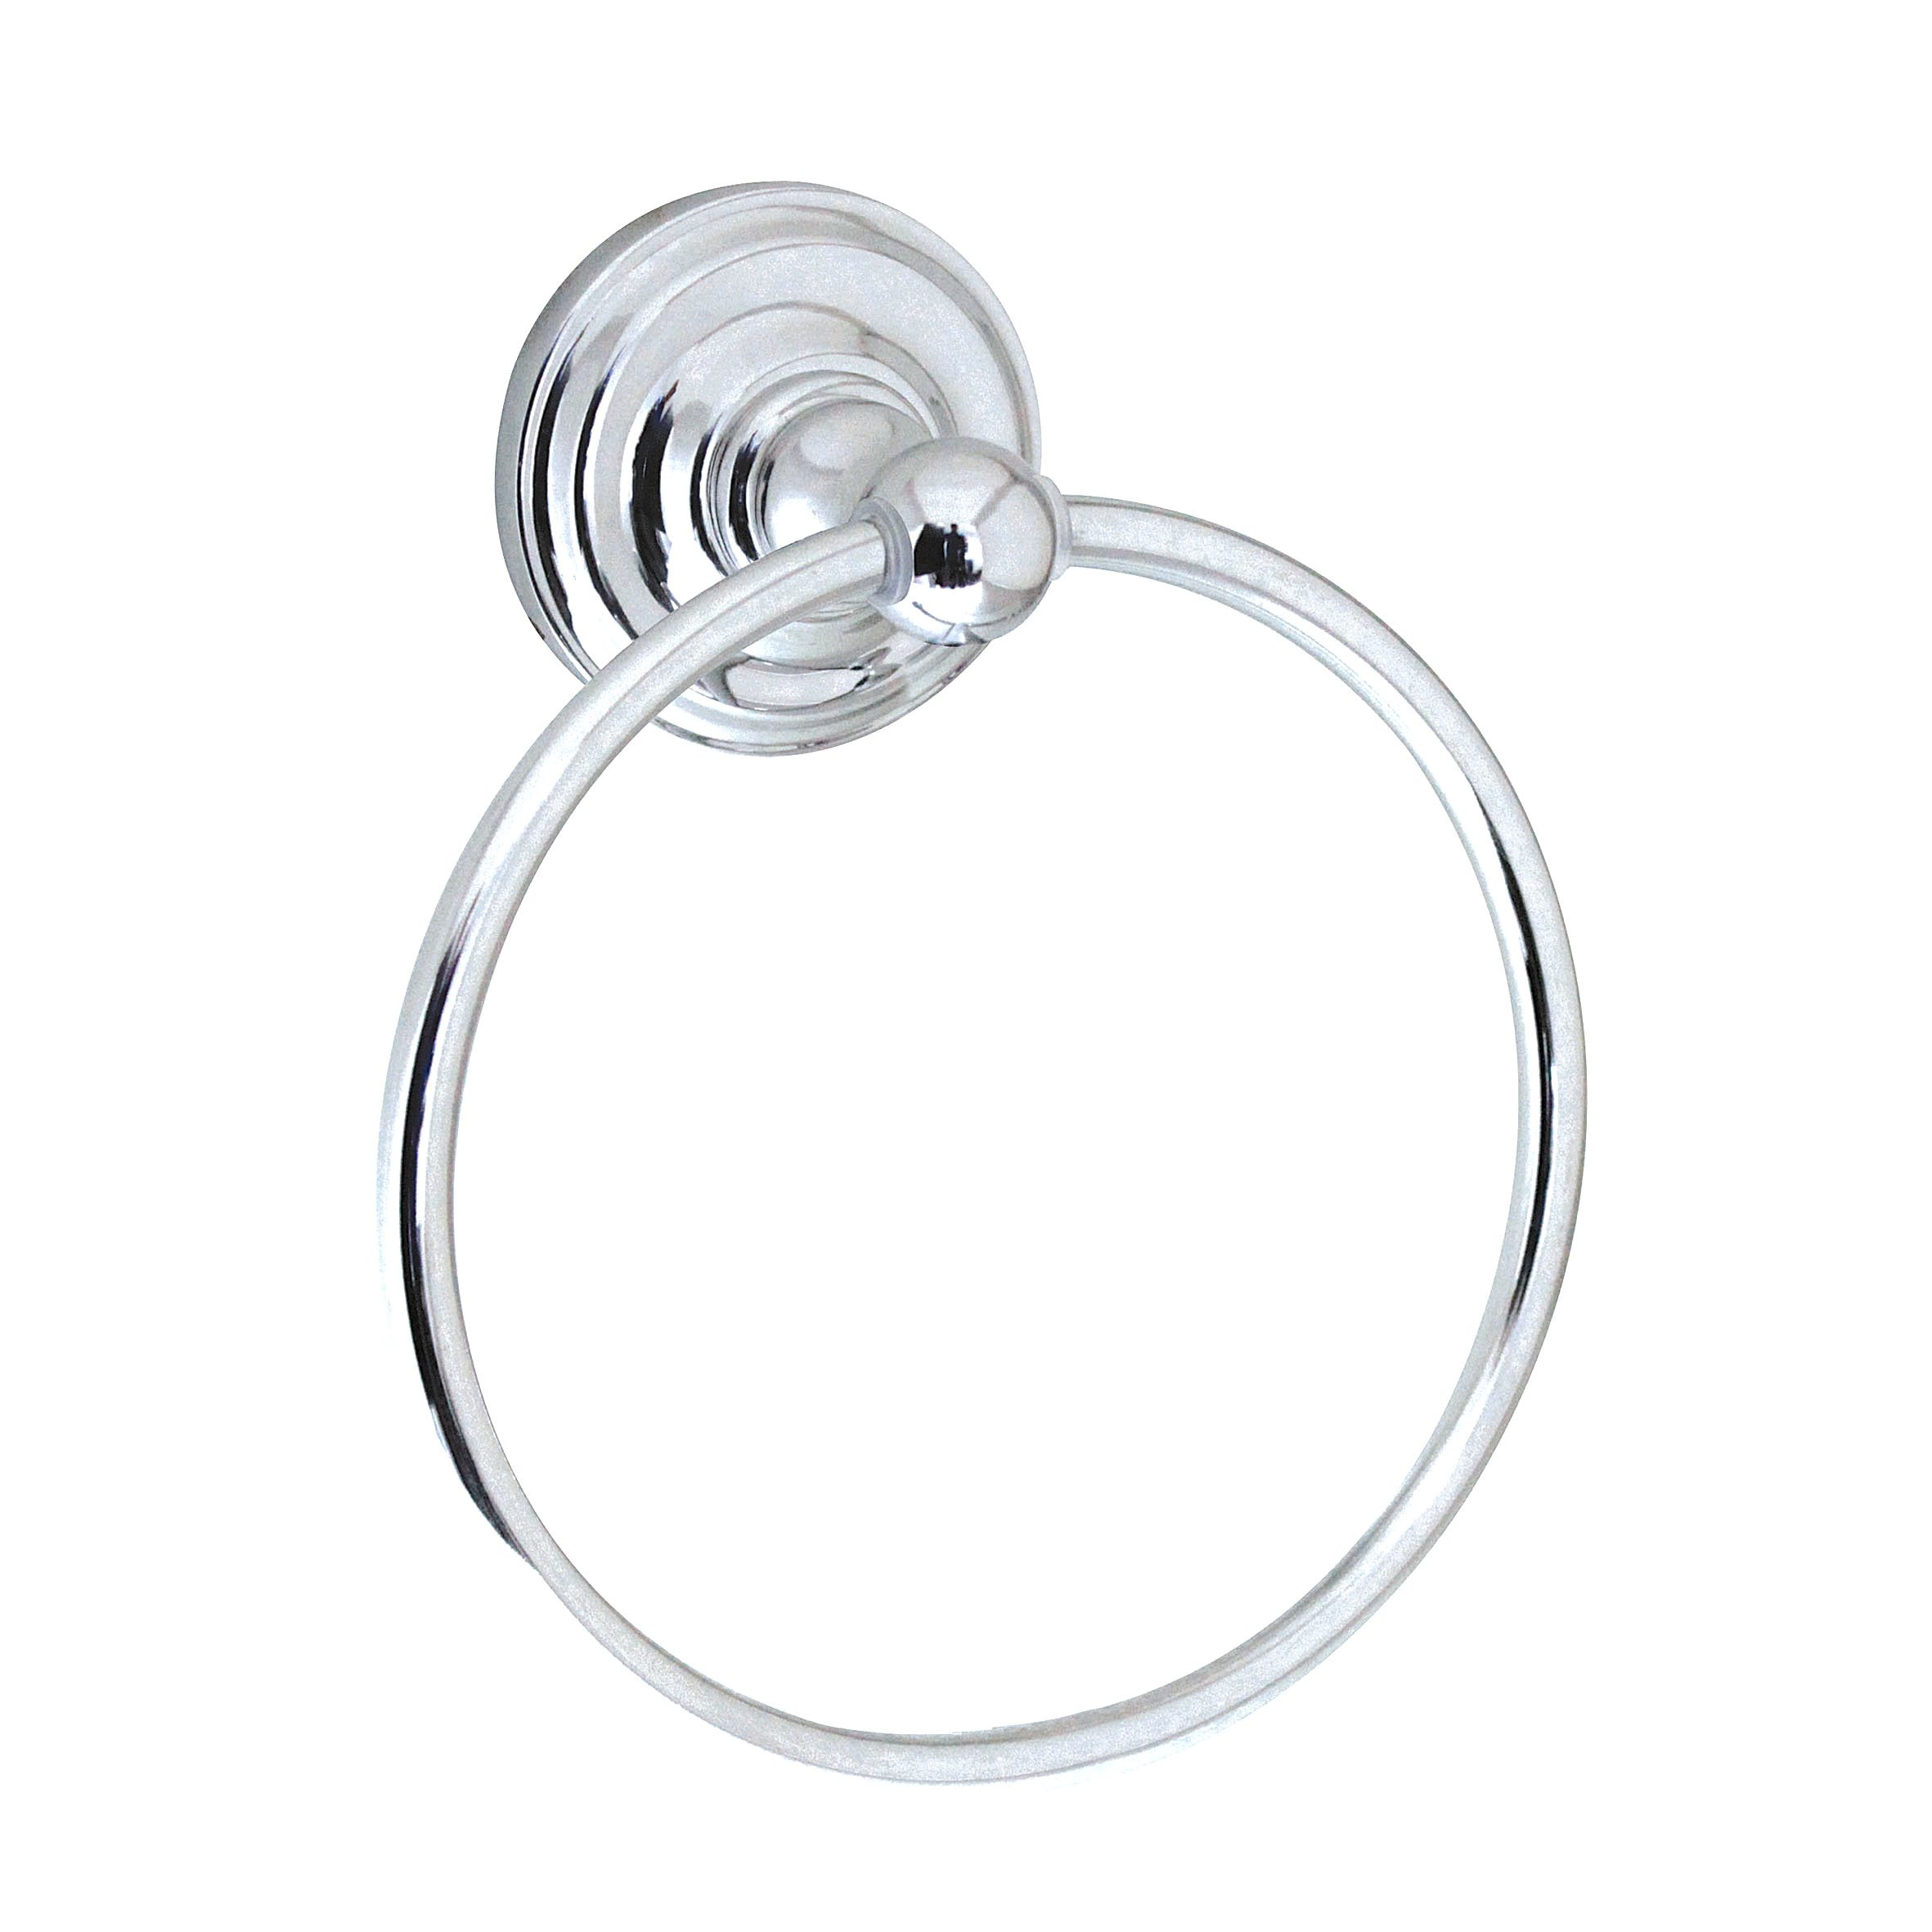 MODONA Towel Ring - Polished Chrome - Viola Series - 5 Year Warrantee